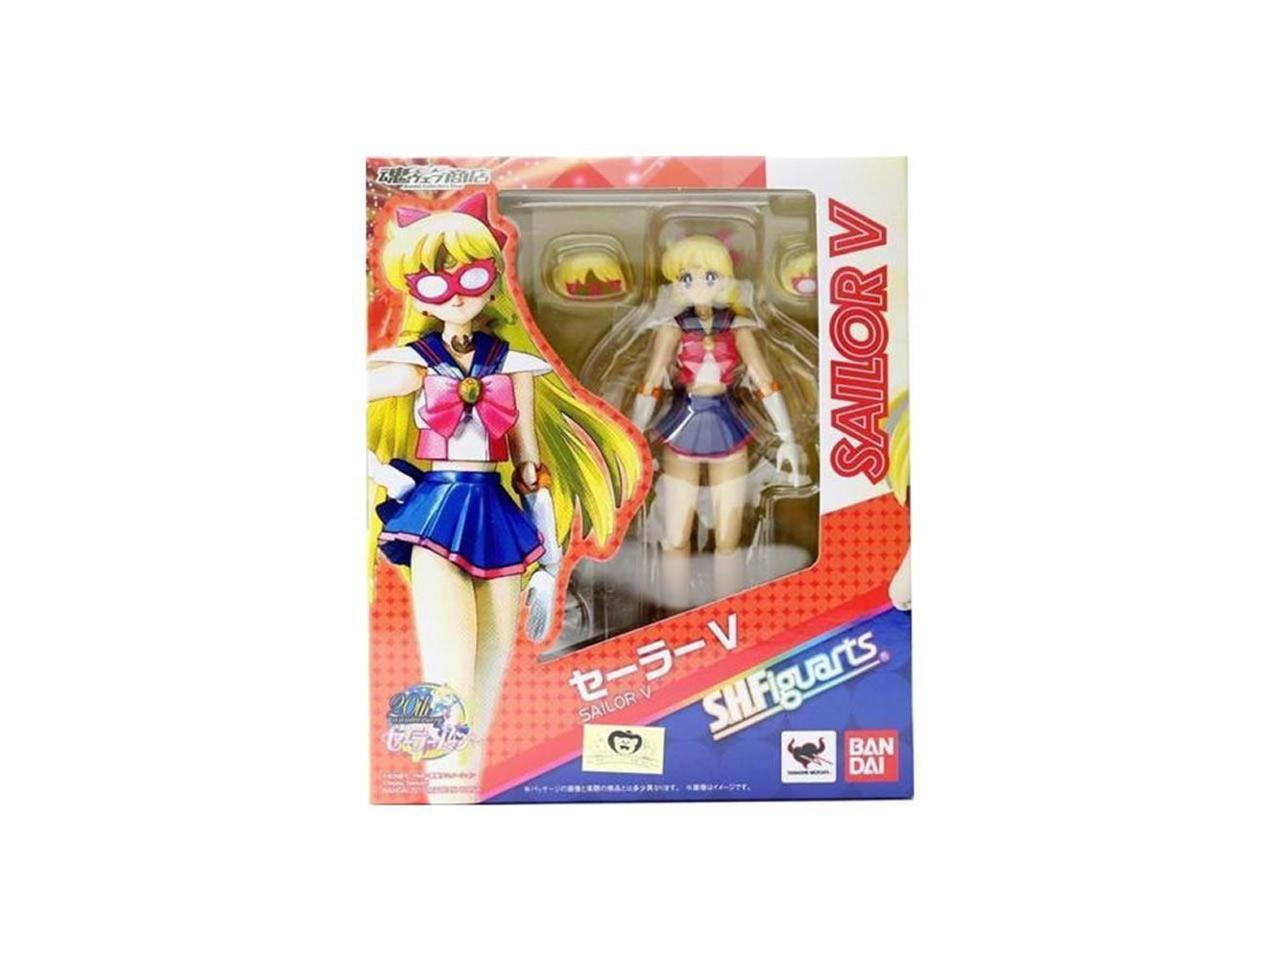 Bandai Tamashii Nations Sailor Moon V Anime Action Figure Set SH Figuarts Japan